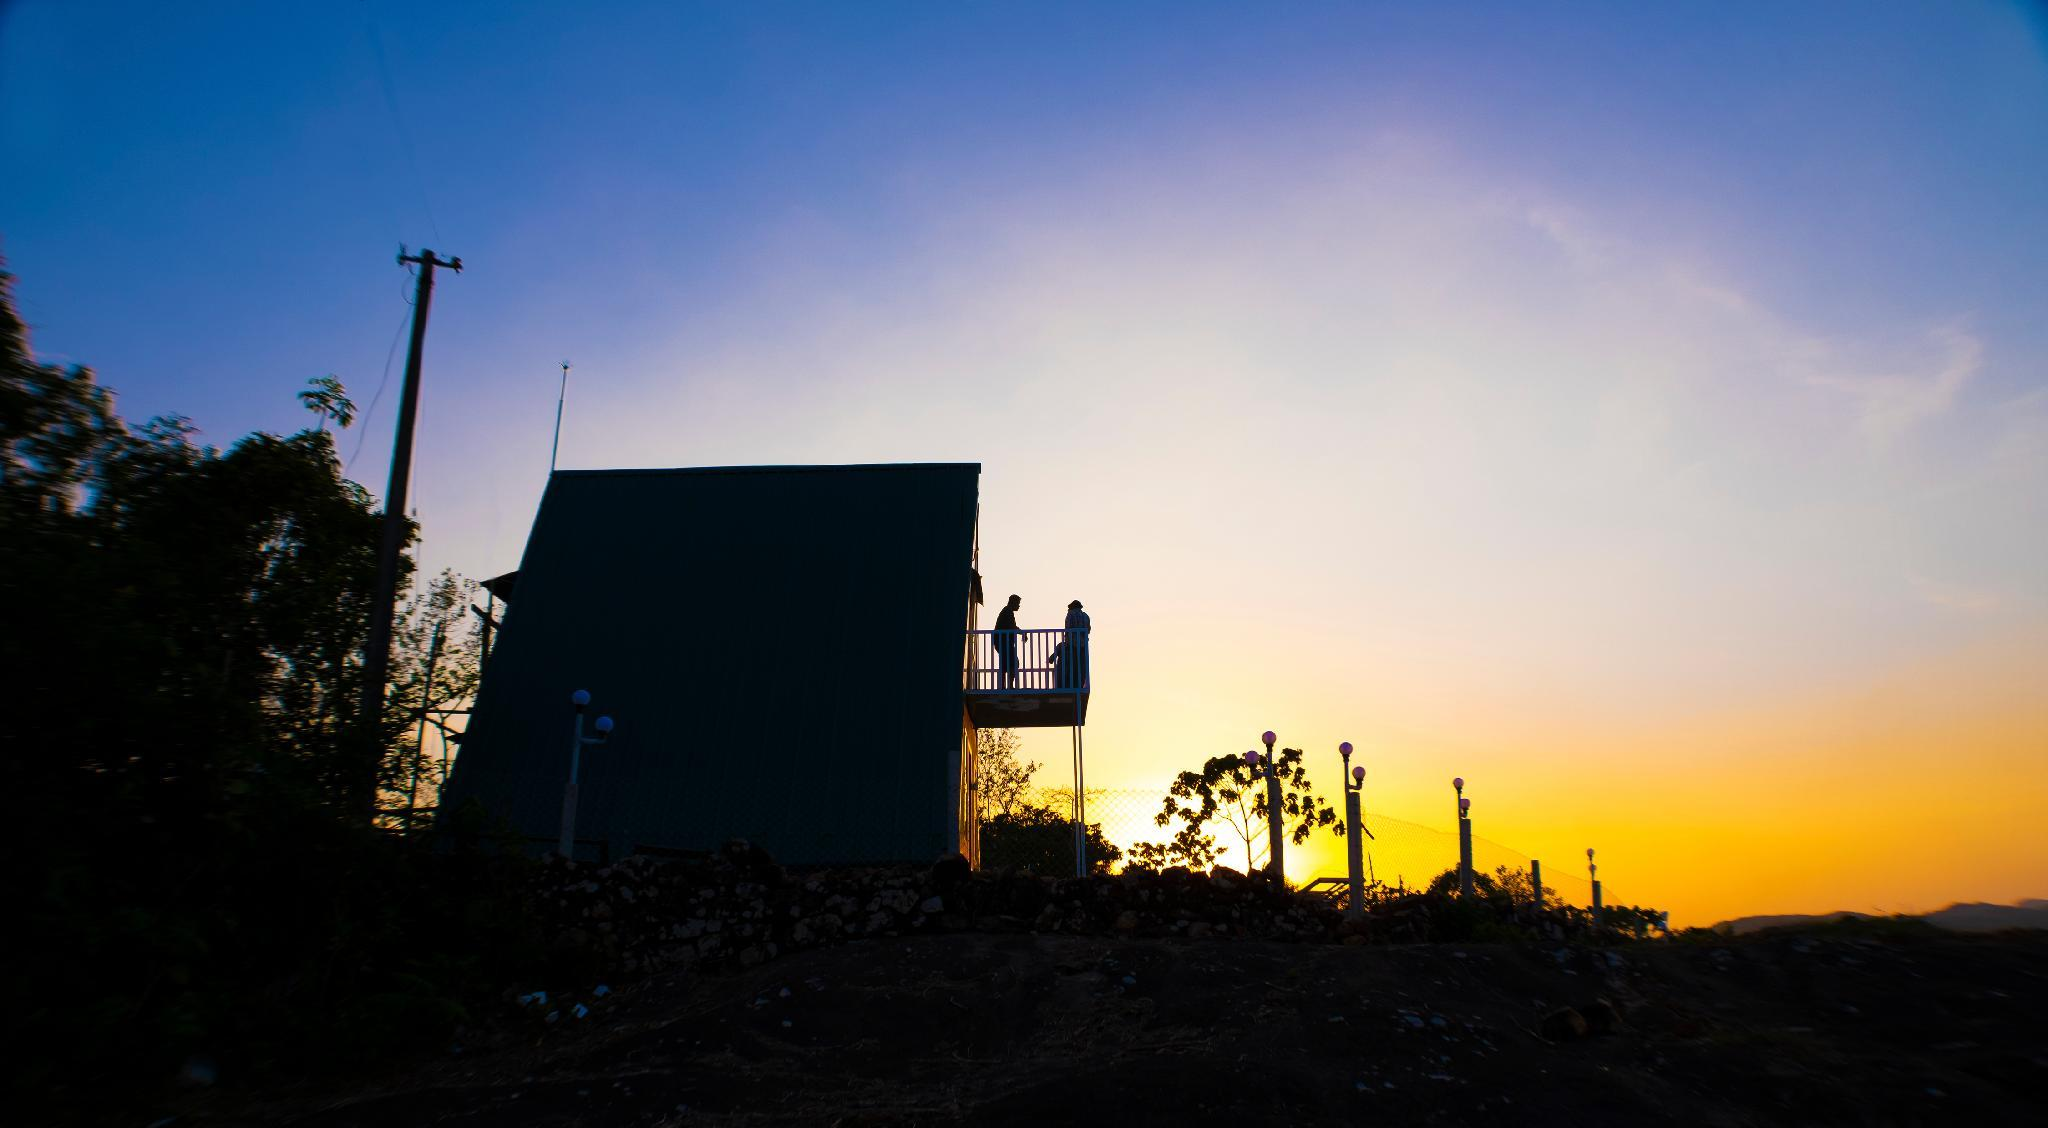 Fall In Love With This Mountain Cottage @ Vagamon